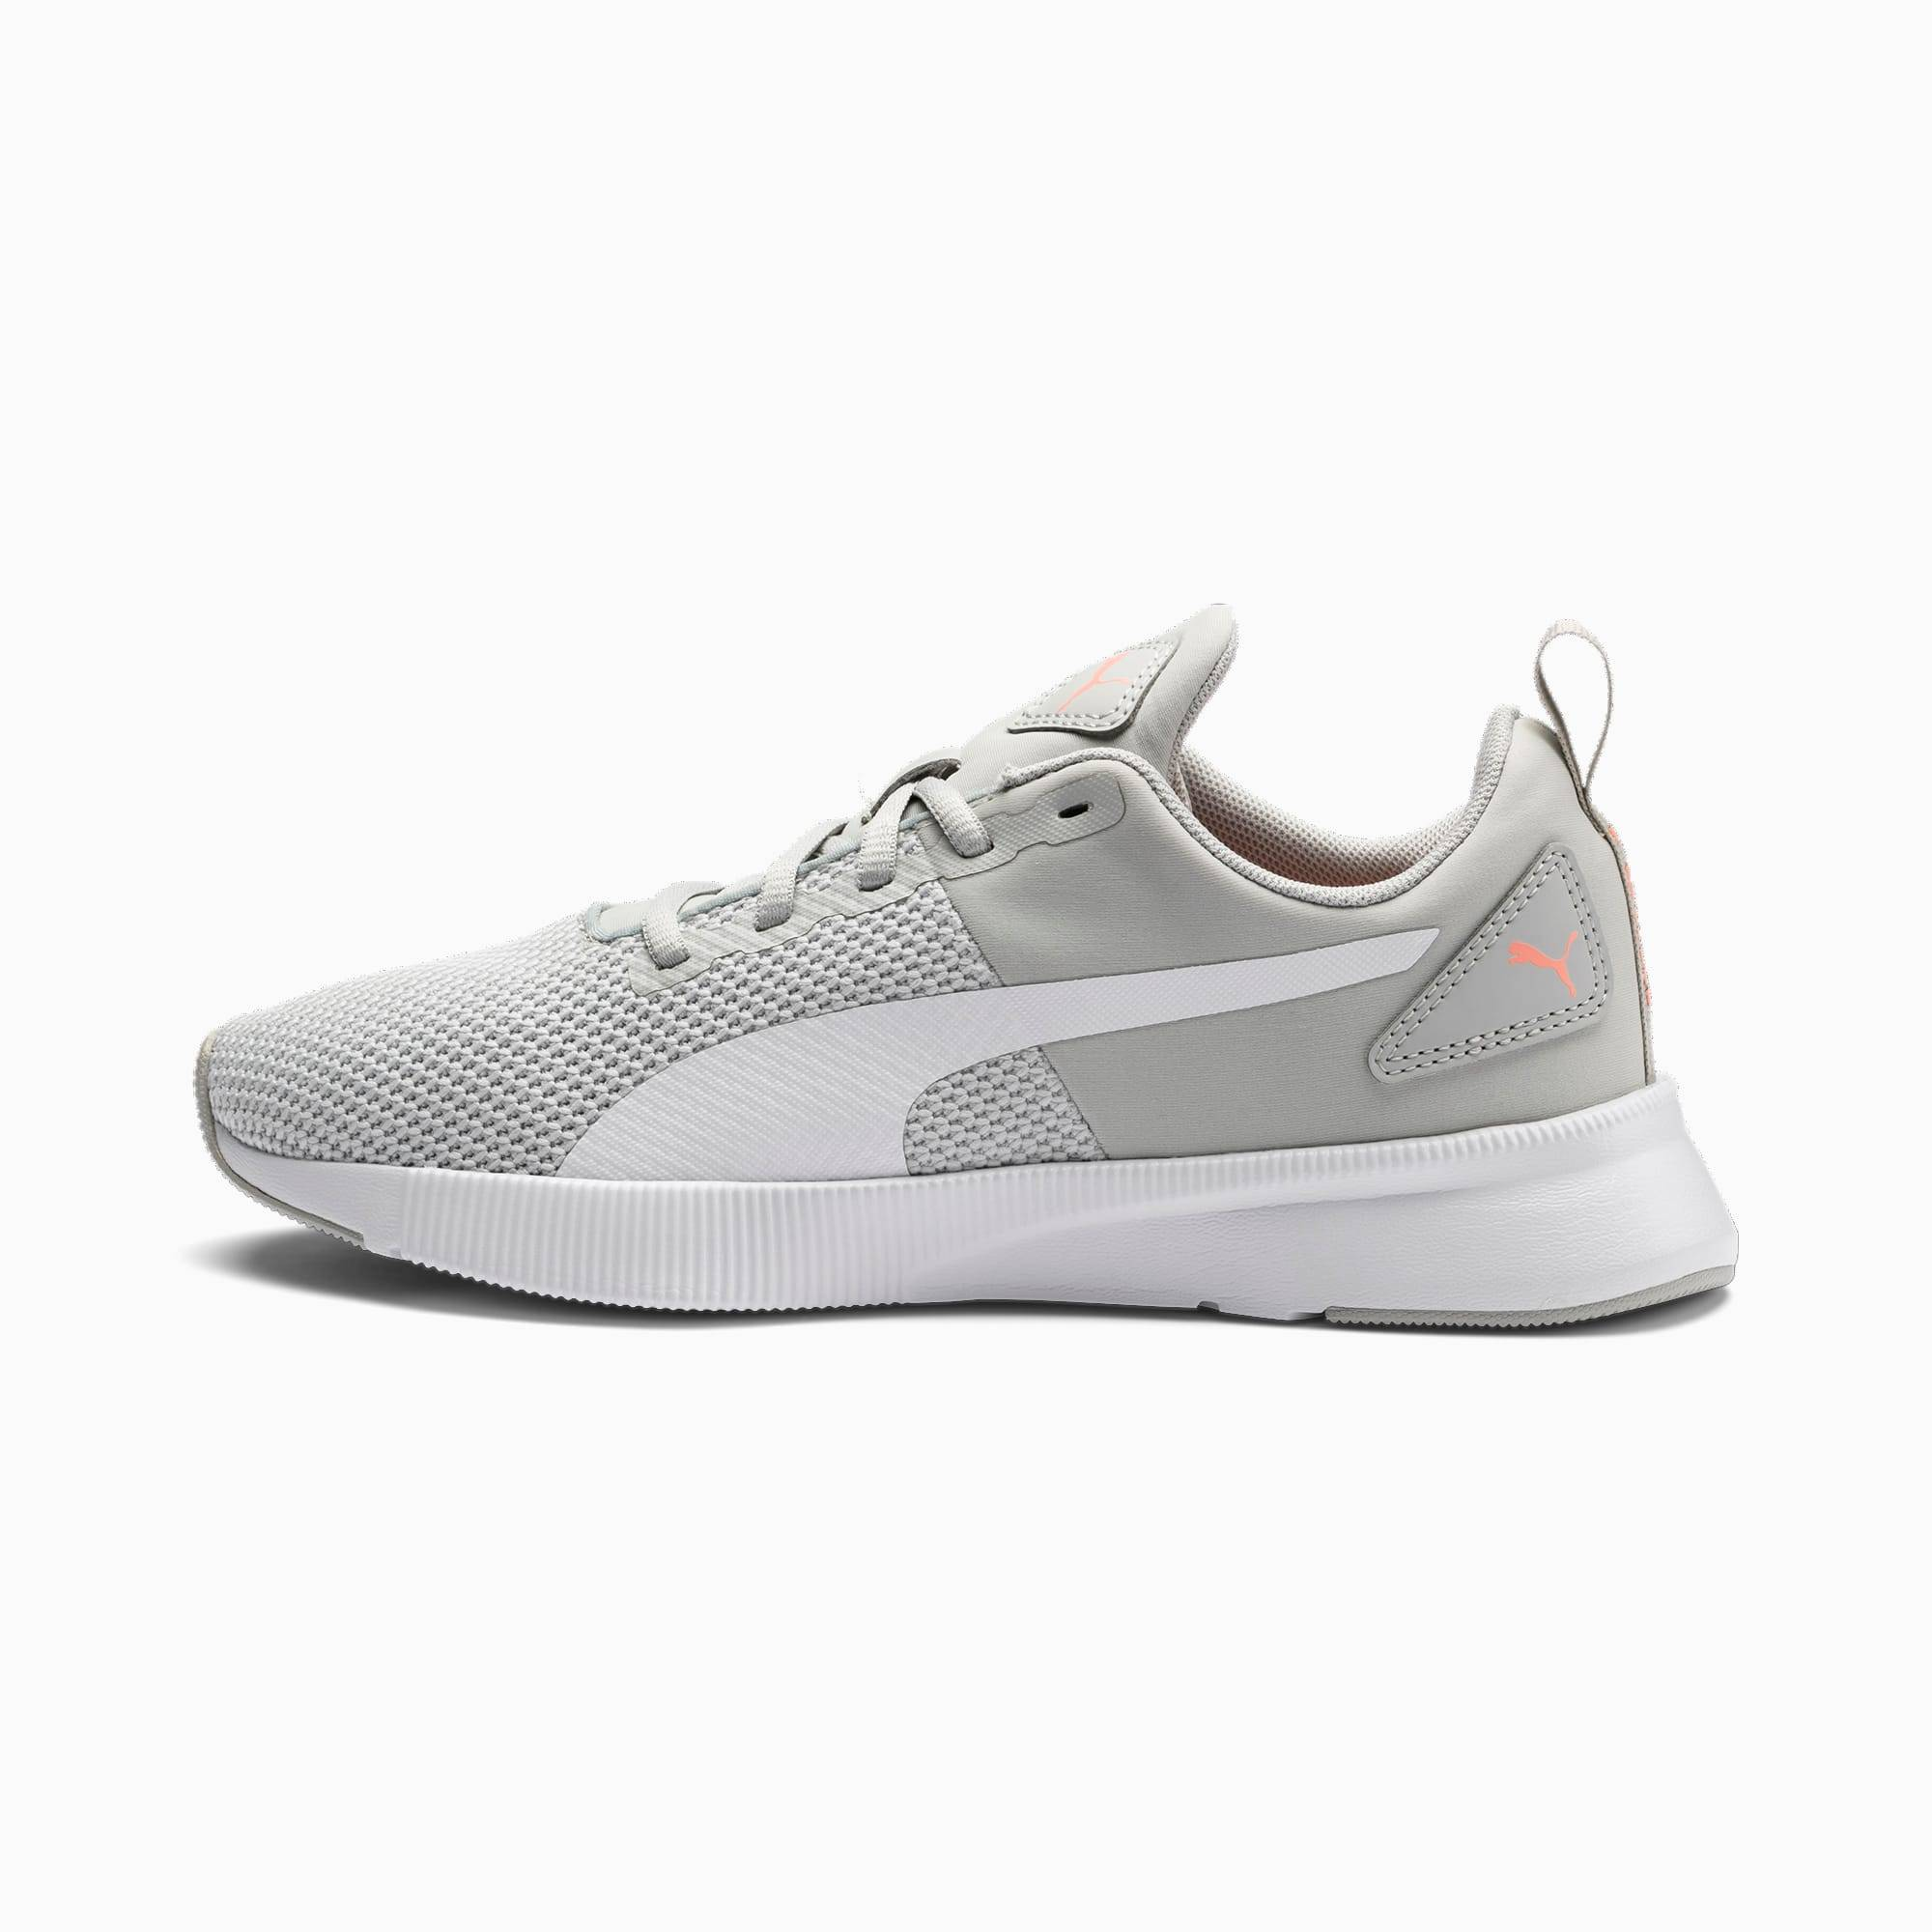 PUMA Chaussure de course Flyer Runner, Blanc/Rose/Gris, Taille 45, Chaussures